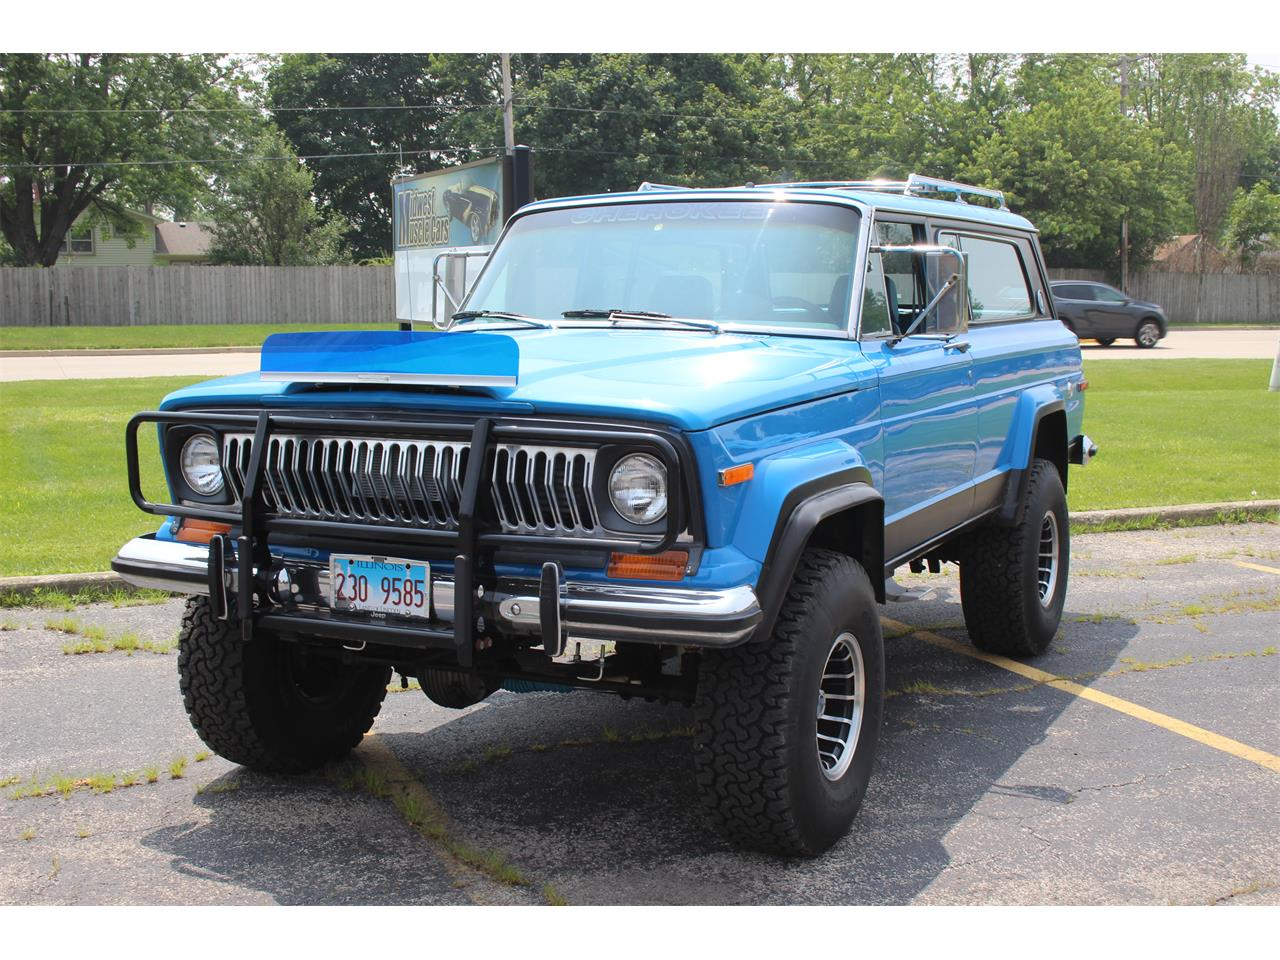 for sale 1978 jeep cherokee chief in lake zurich, illinois cars - lake zurich, il at geebo